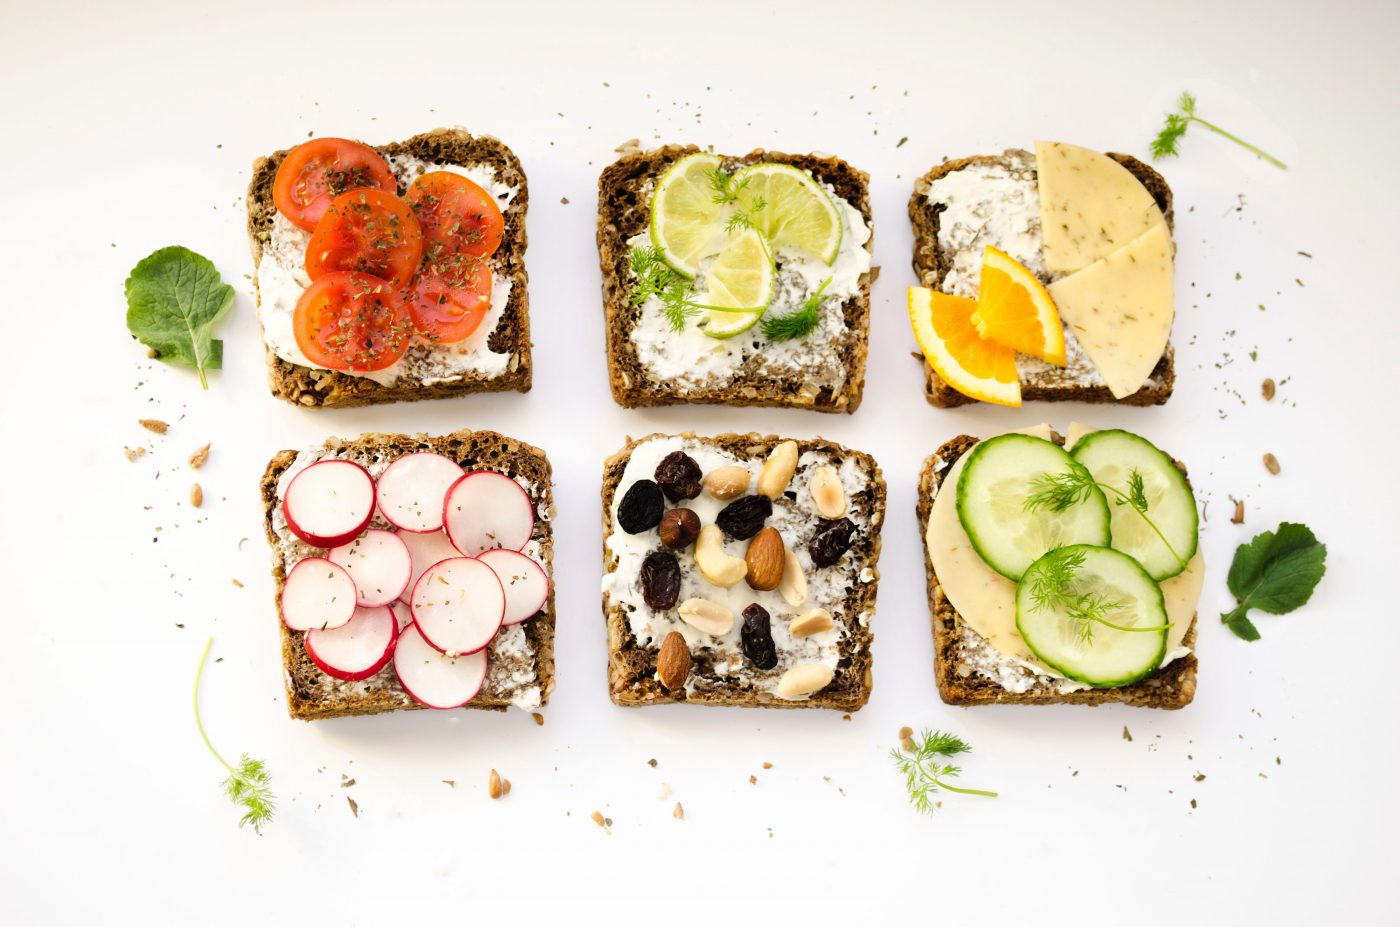 Good Mood Food: 3 Things to Eat for a Better Mood